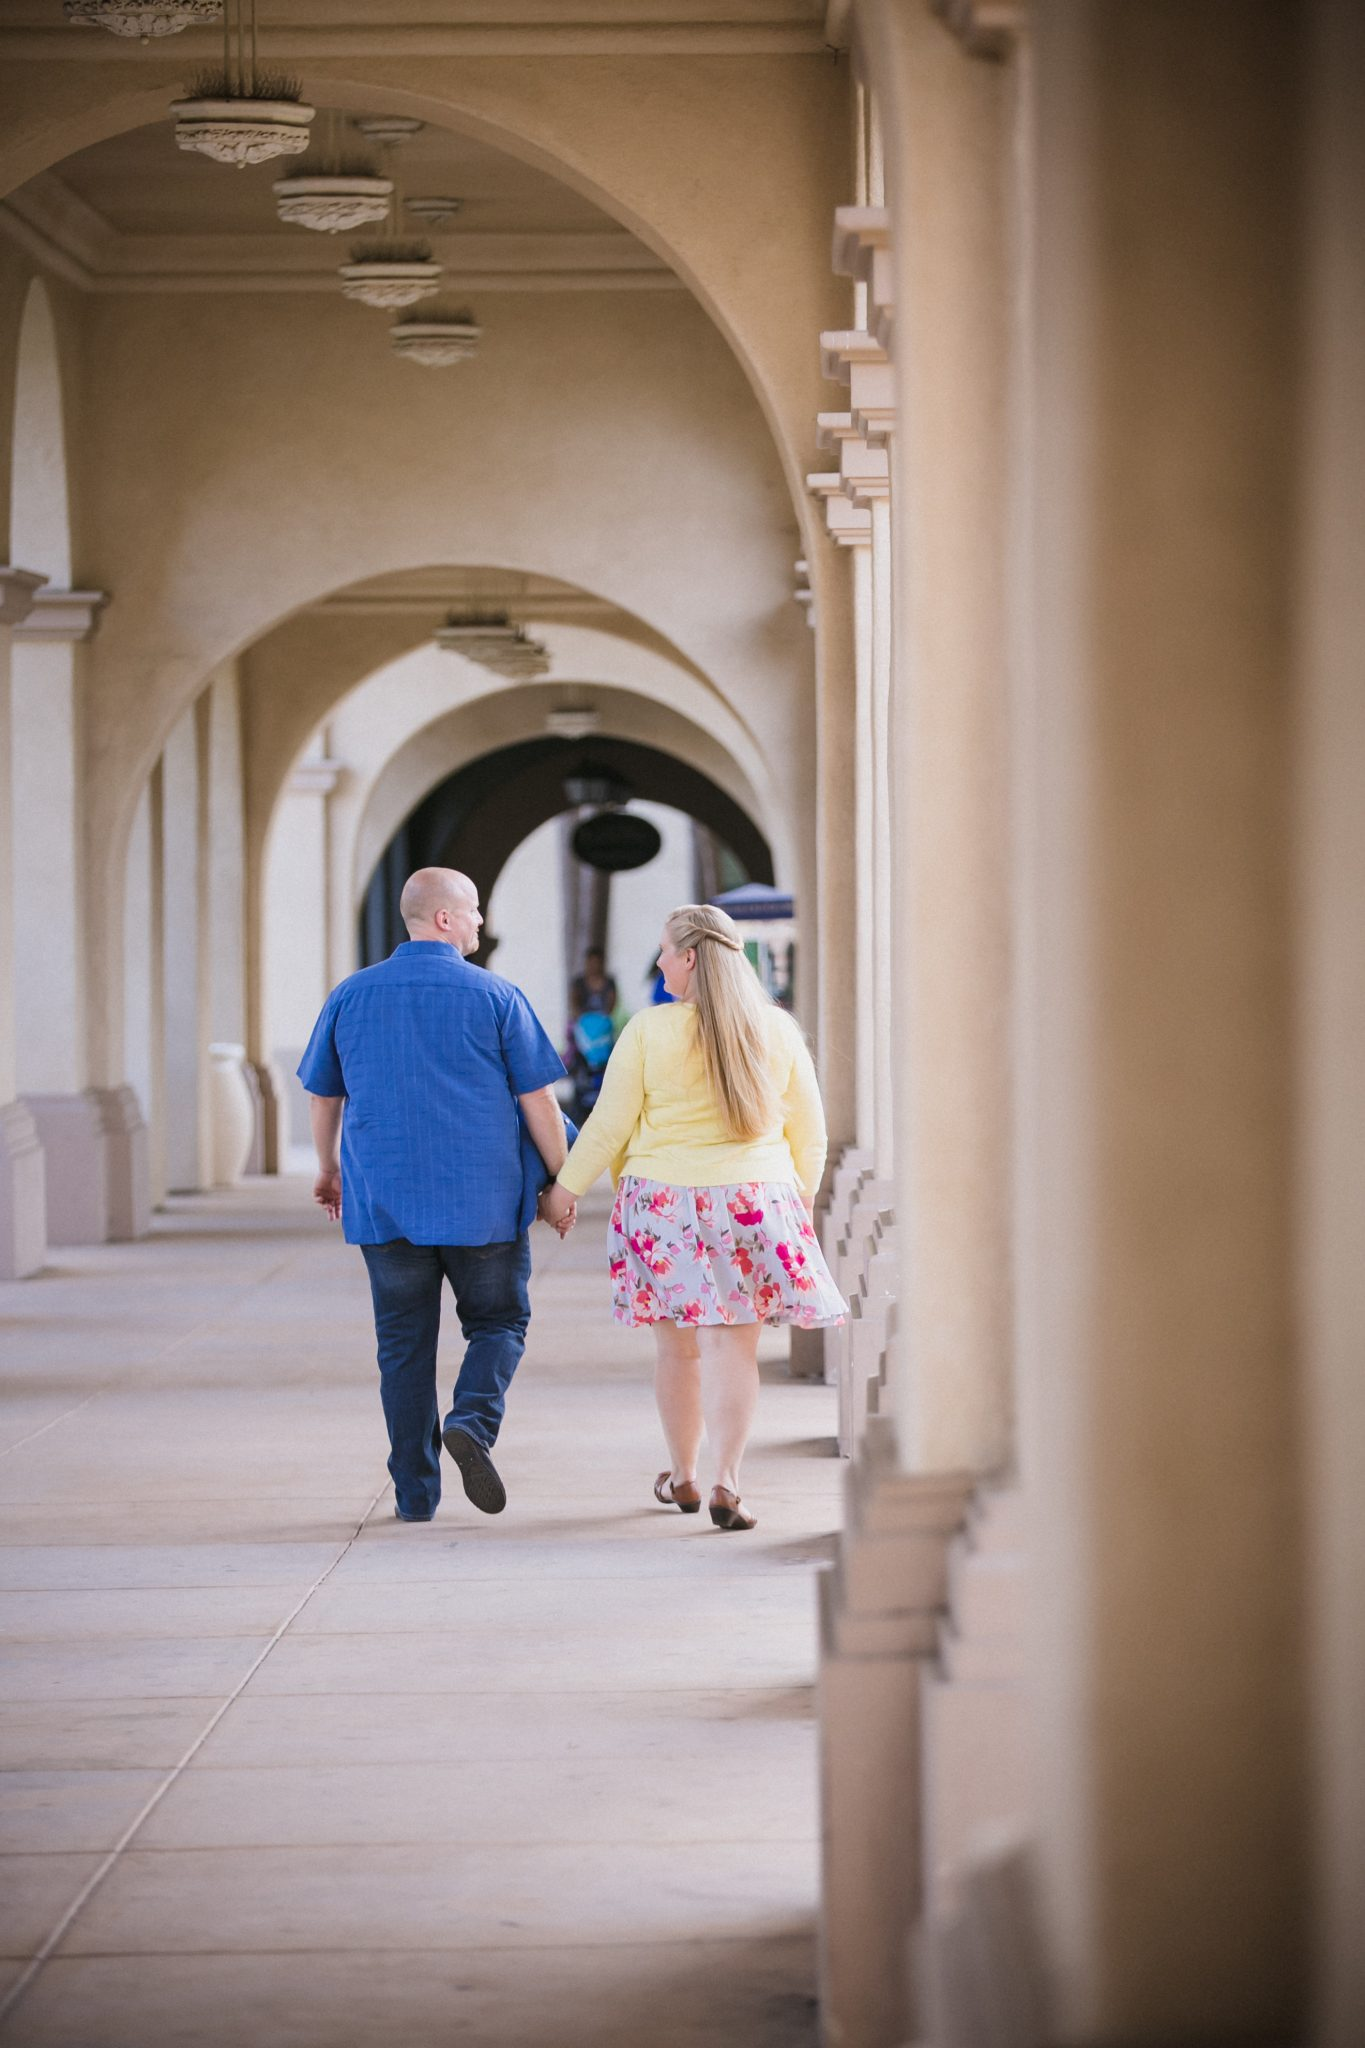 Couple walking and holding hands at Balboa Park